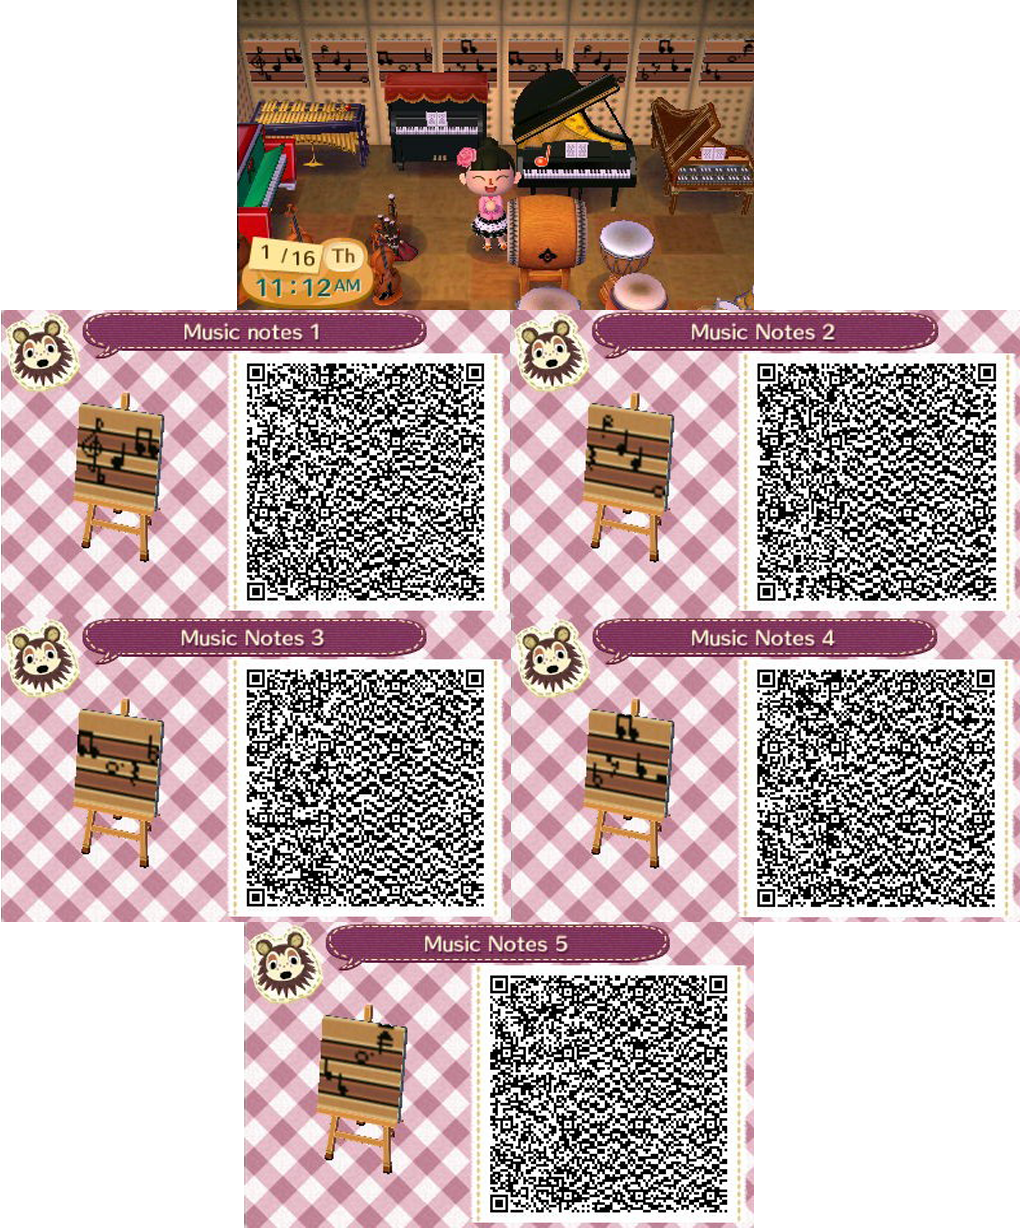 ACNL Wallpaper QR Codes wallpapers 2020 Acnl qr codes